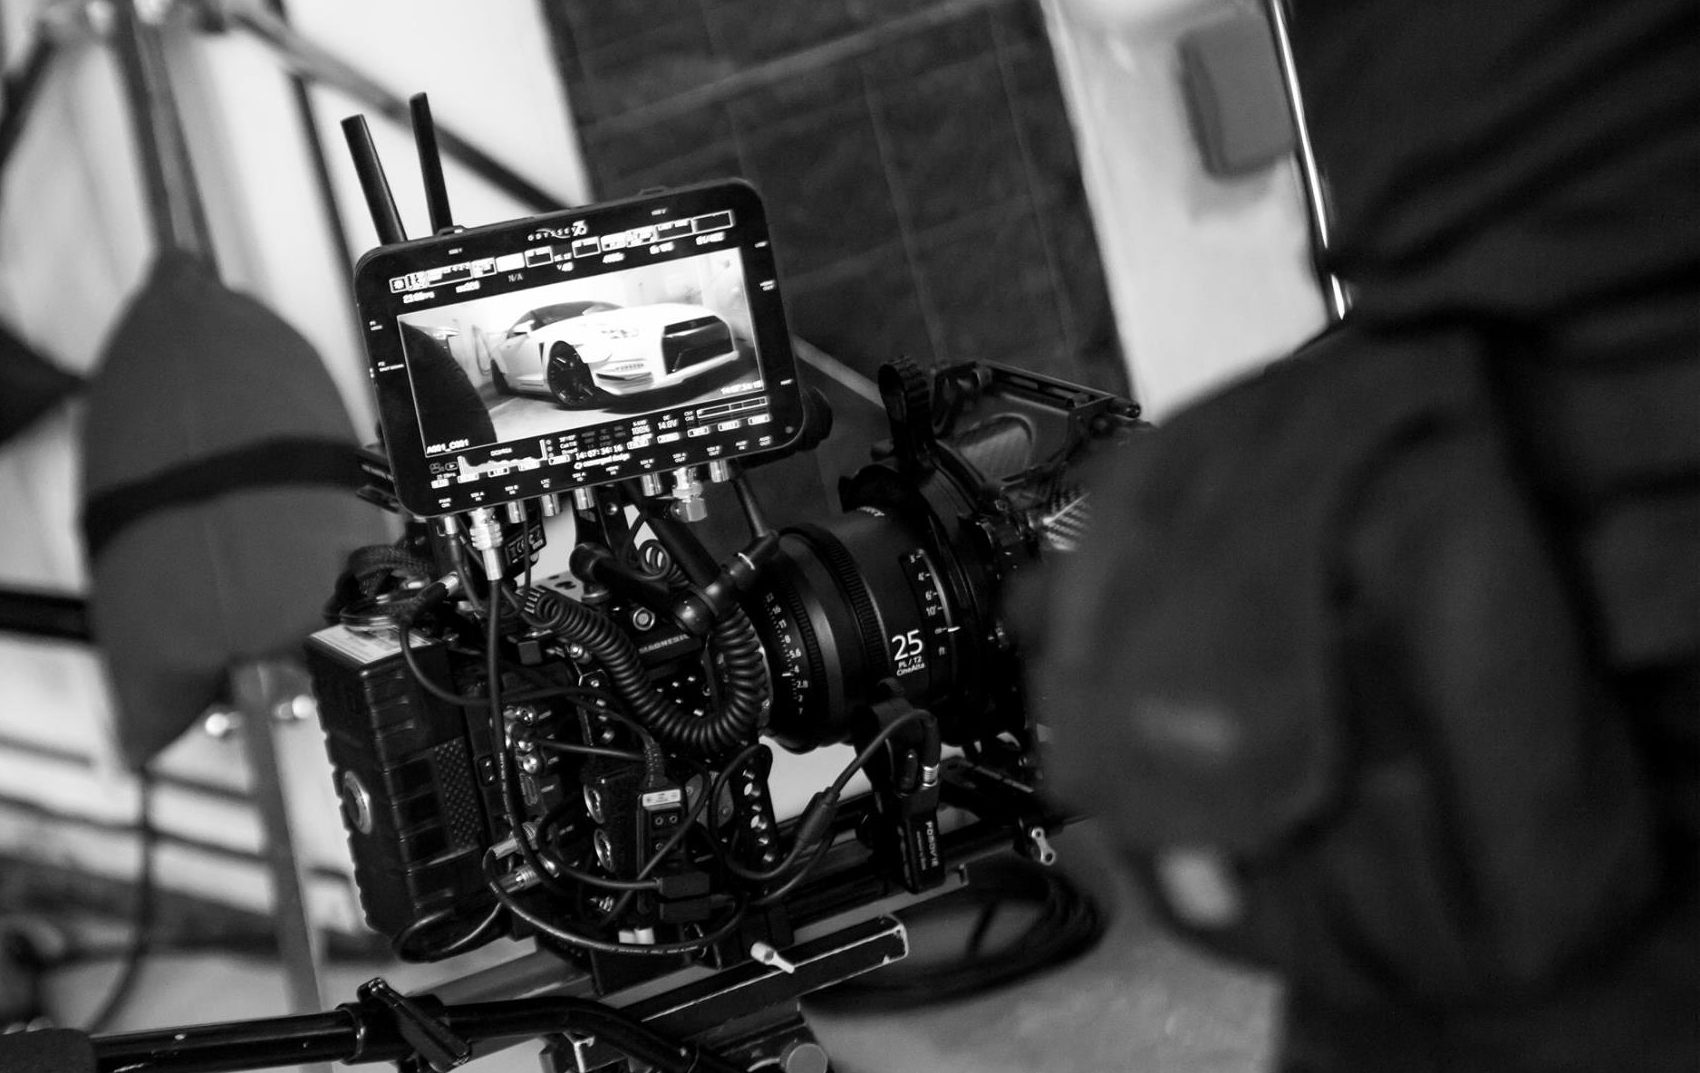 VIDEO PRODUCTION - High quality digital video is one of the most effective forms of marketing if executed correctly. I have worked with many brands creating amazing video content that not only looked great but drove tangible marketing results.